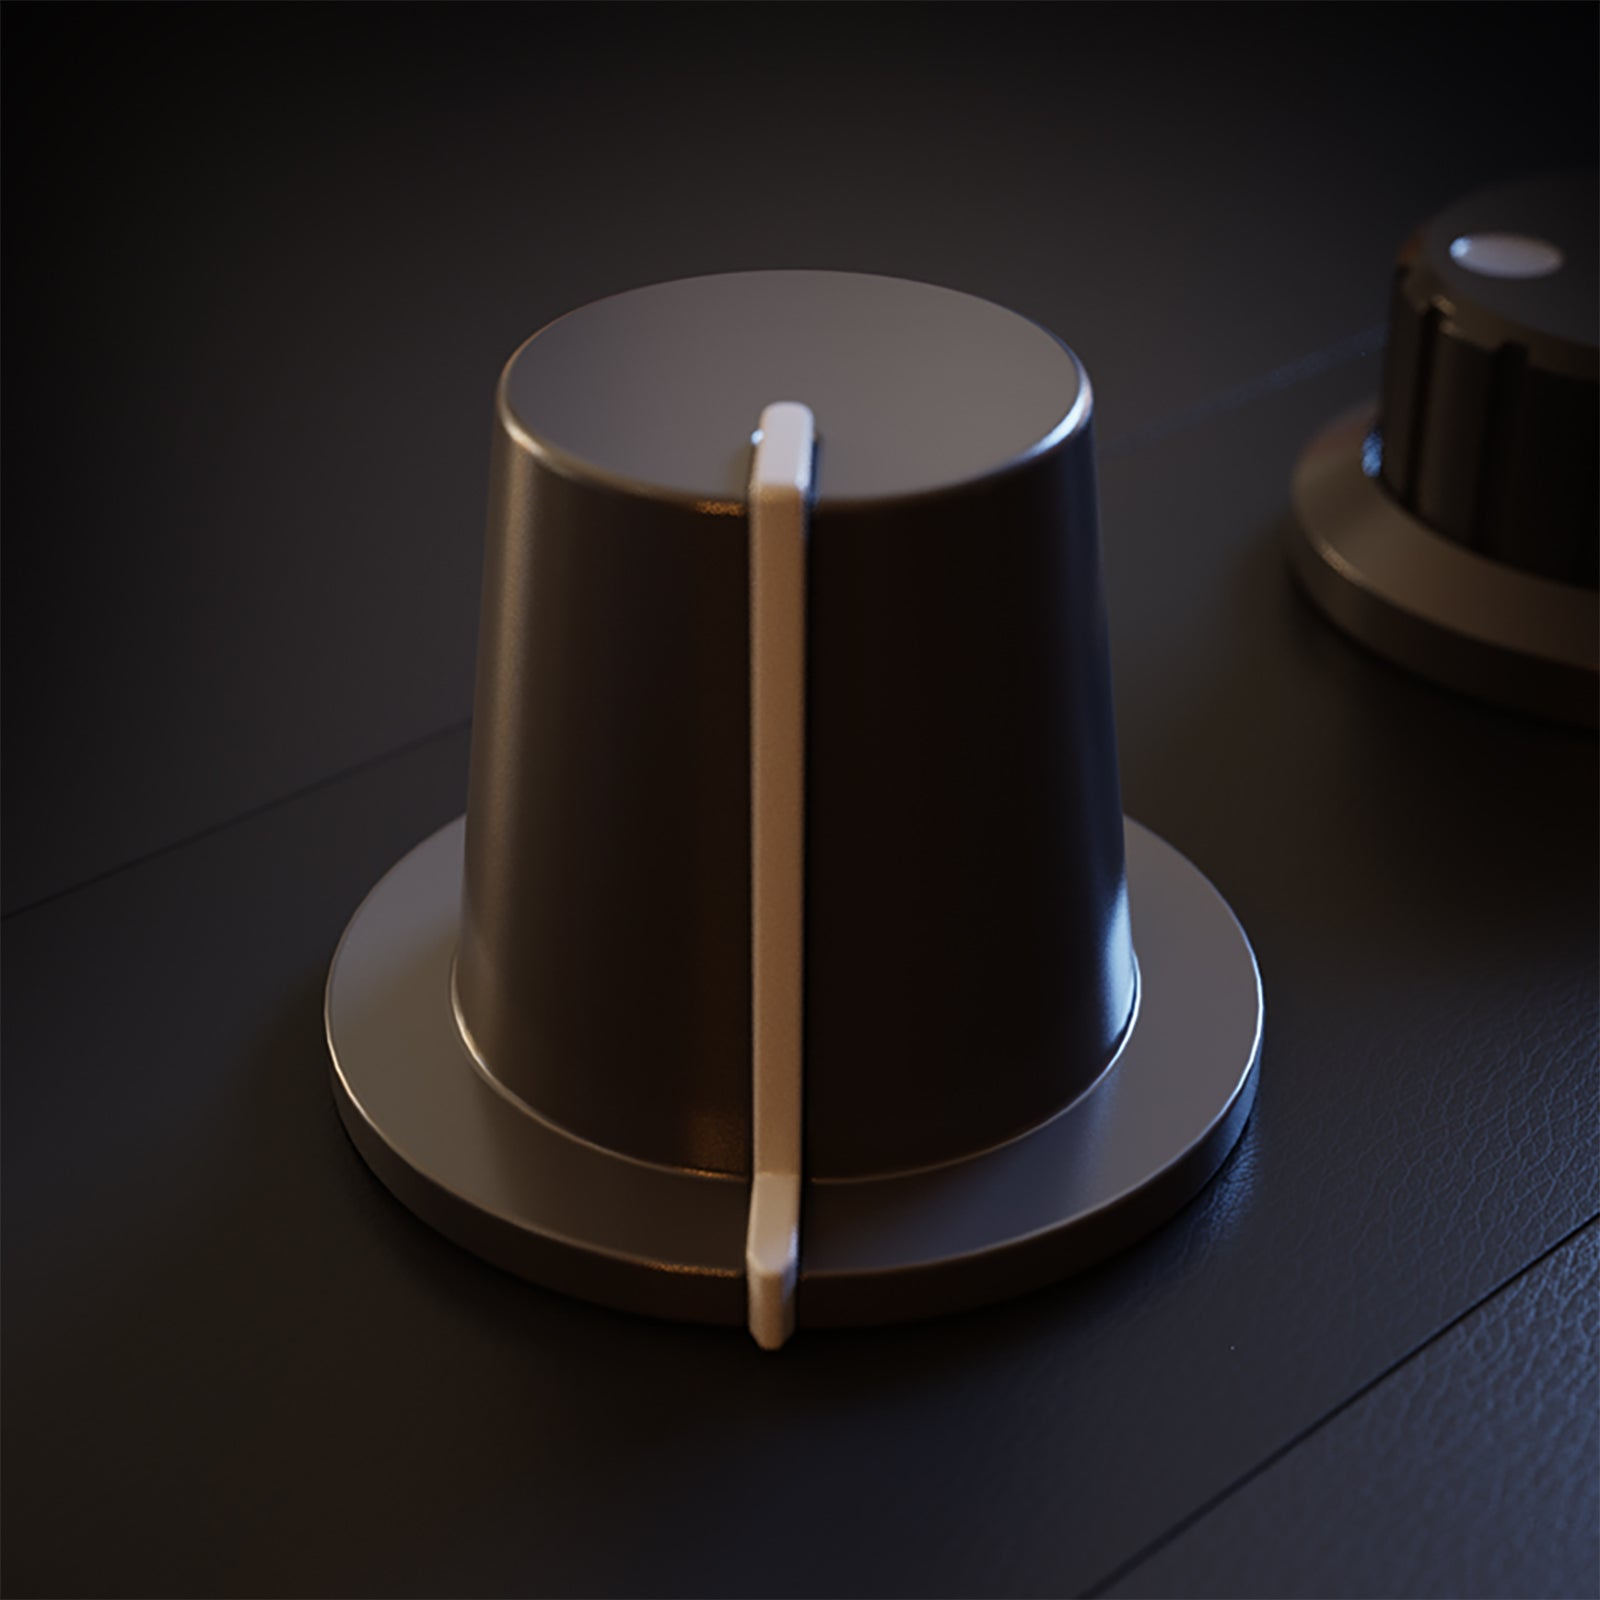 standart audio knob 3d model blend